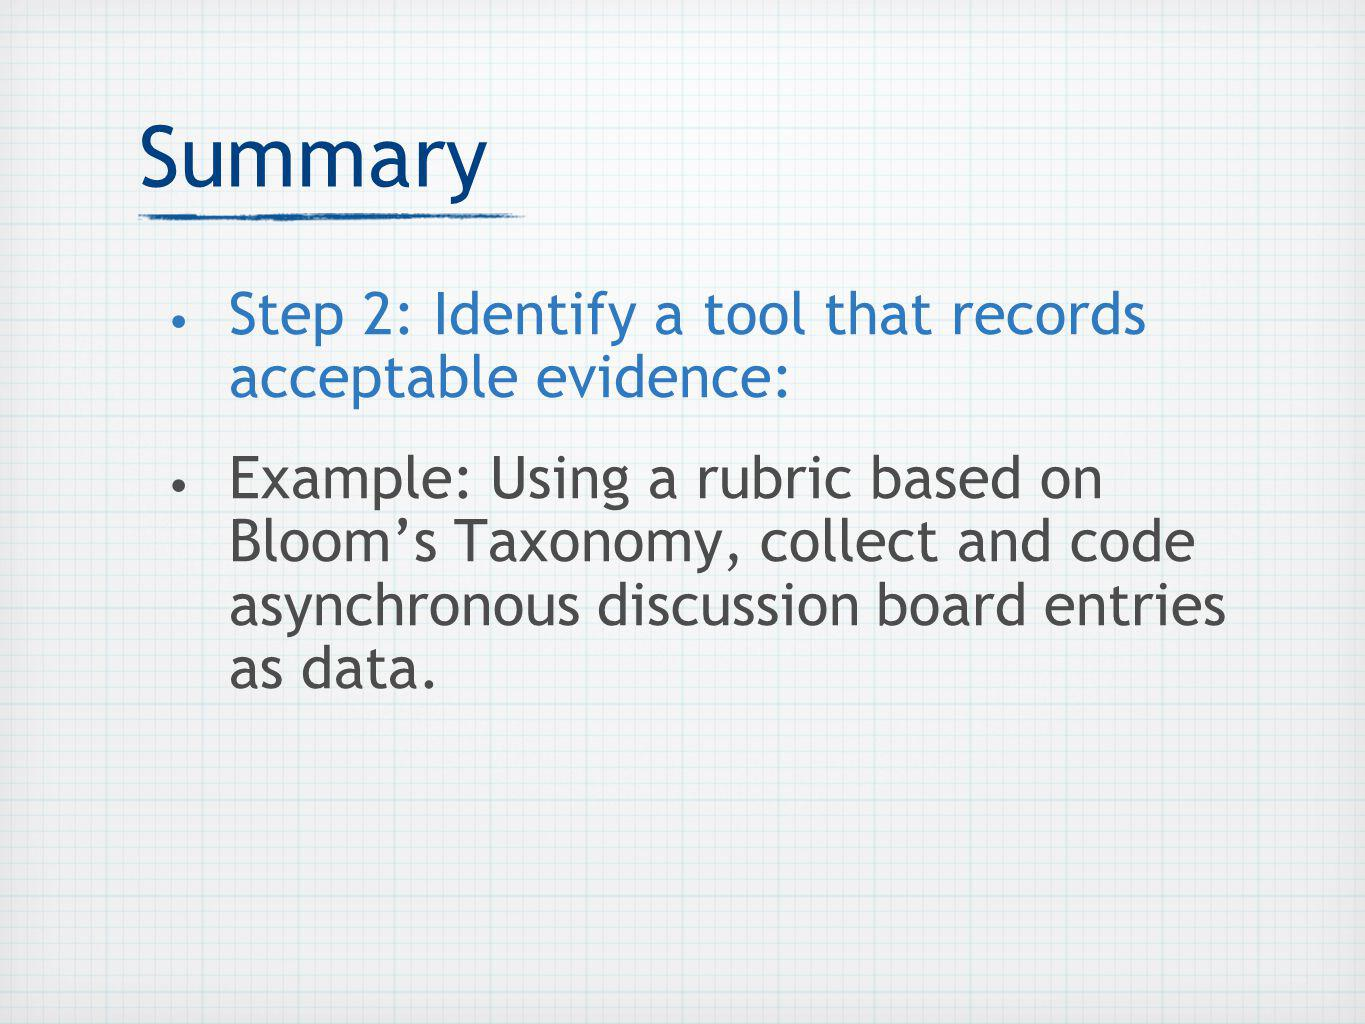 Summary Step 2: Identify a tool that records acceptable evidence: Example: Using a rubric based on Blooms Taxonomy, collect and code asynchronous discussion board entries as data.